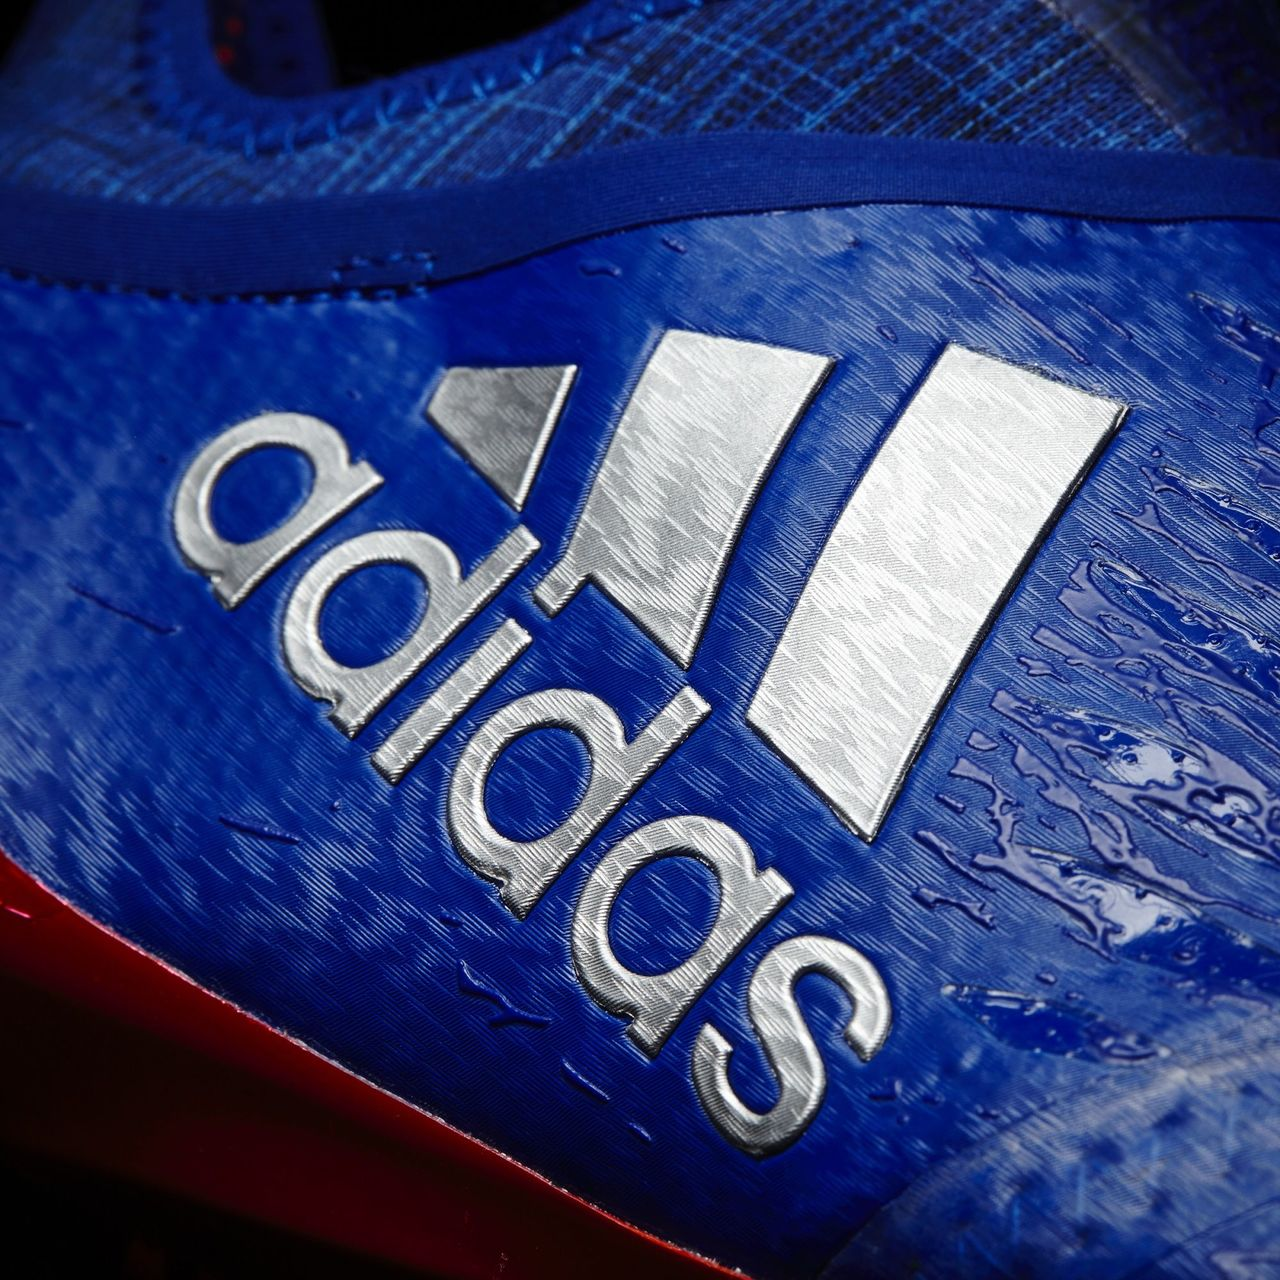 d97faec4d ... Click to enlarge image  adidas_x_16_purechaos_firm_ground_boots_collegiate_royal_solar_red_solar_red_f.jpg  ...